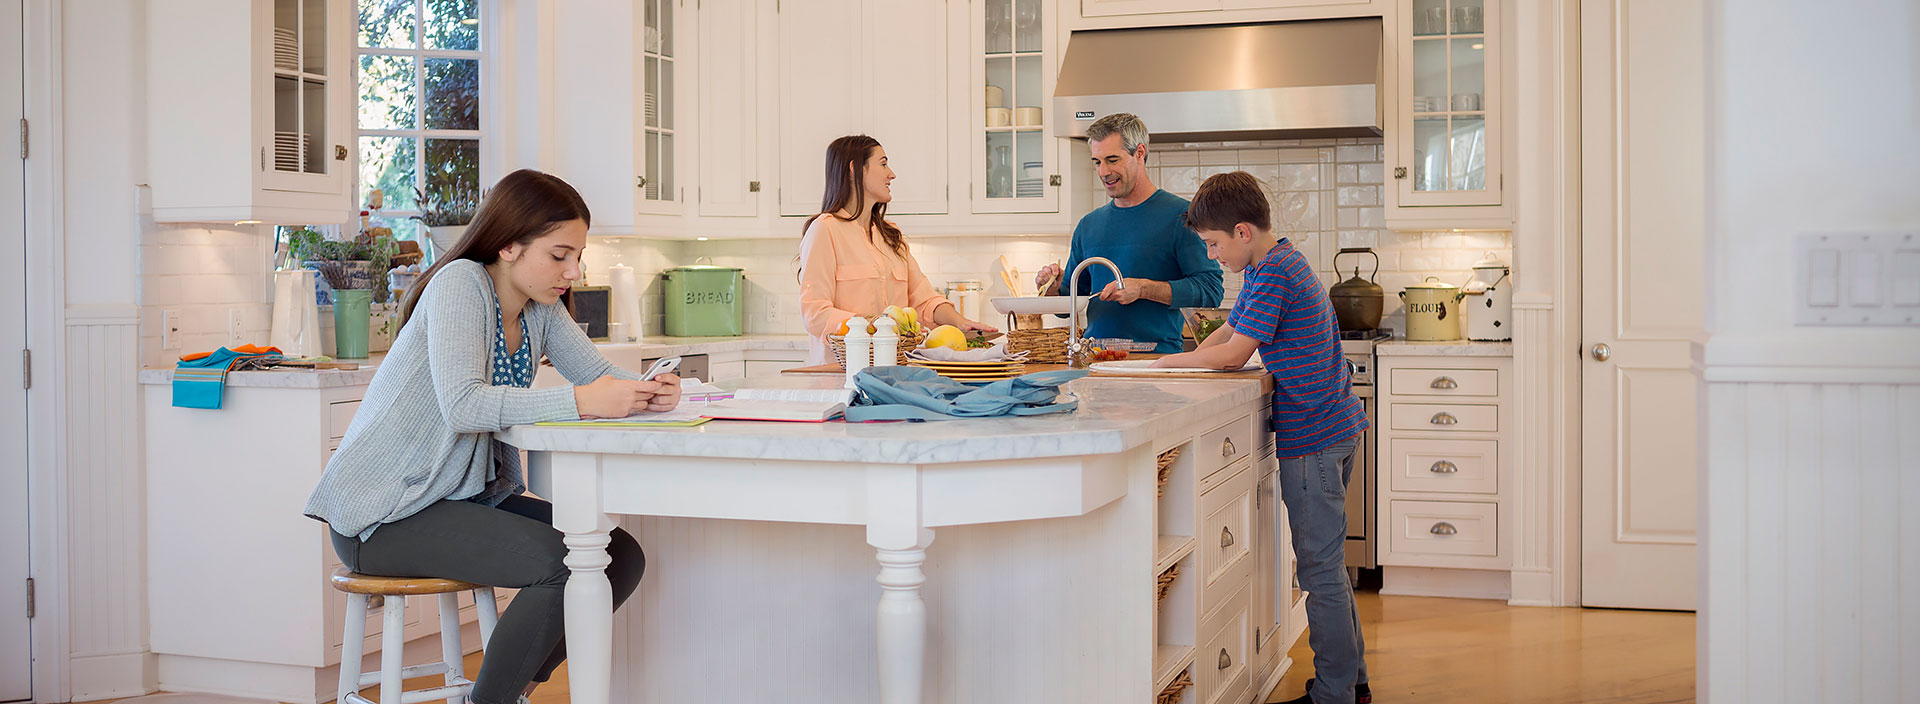 General Lifestyle Family in Kitchen Girl Sitting